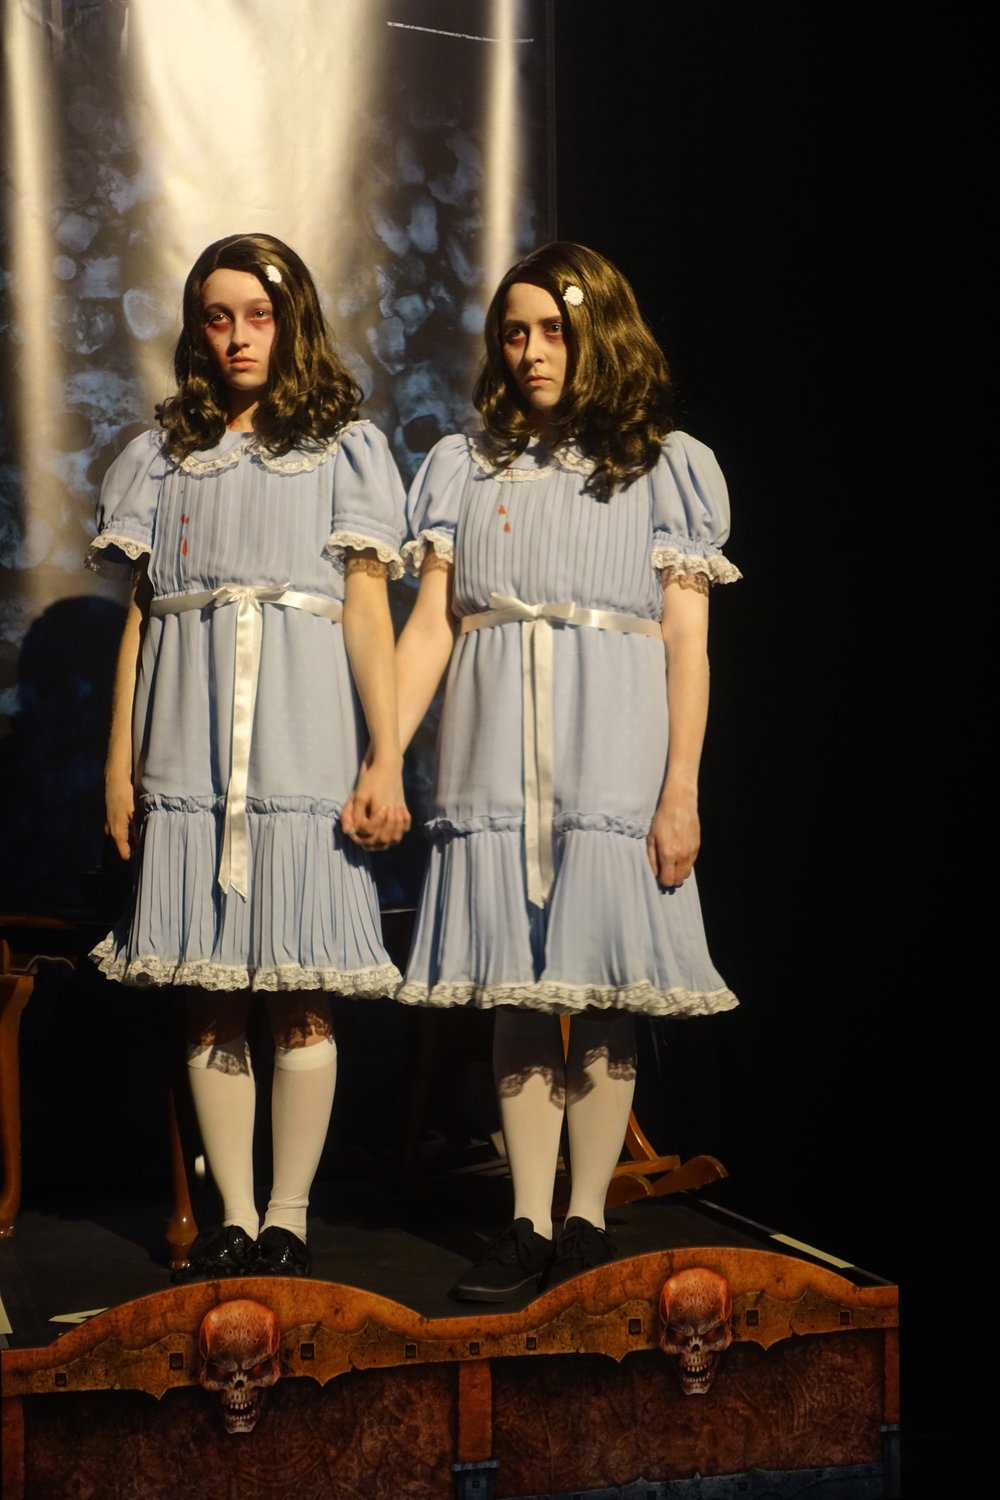 The Grady Twins from  The Shining.  No, nothing creepy about them  at all.